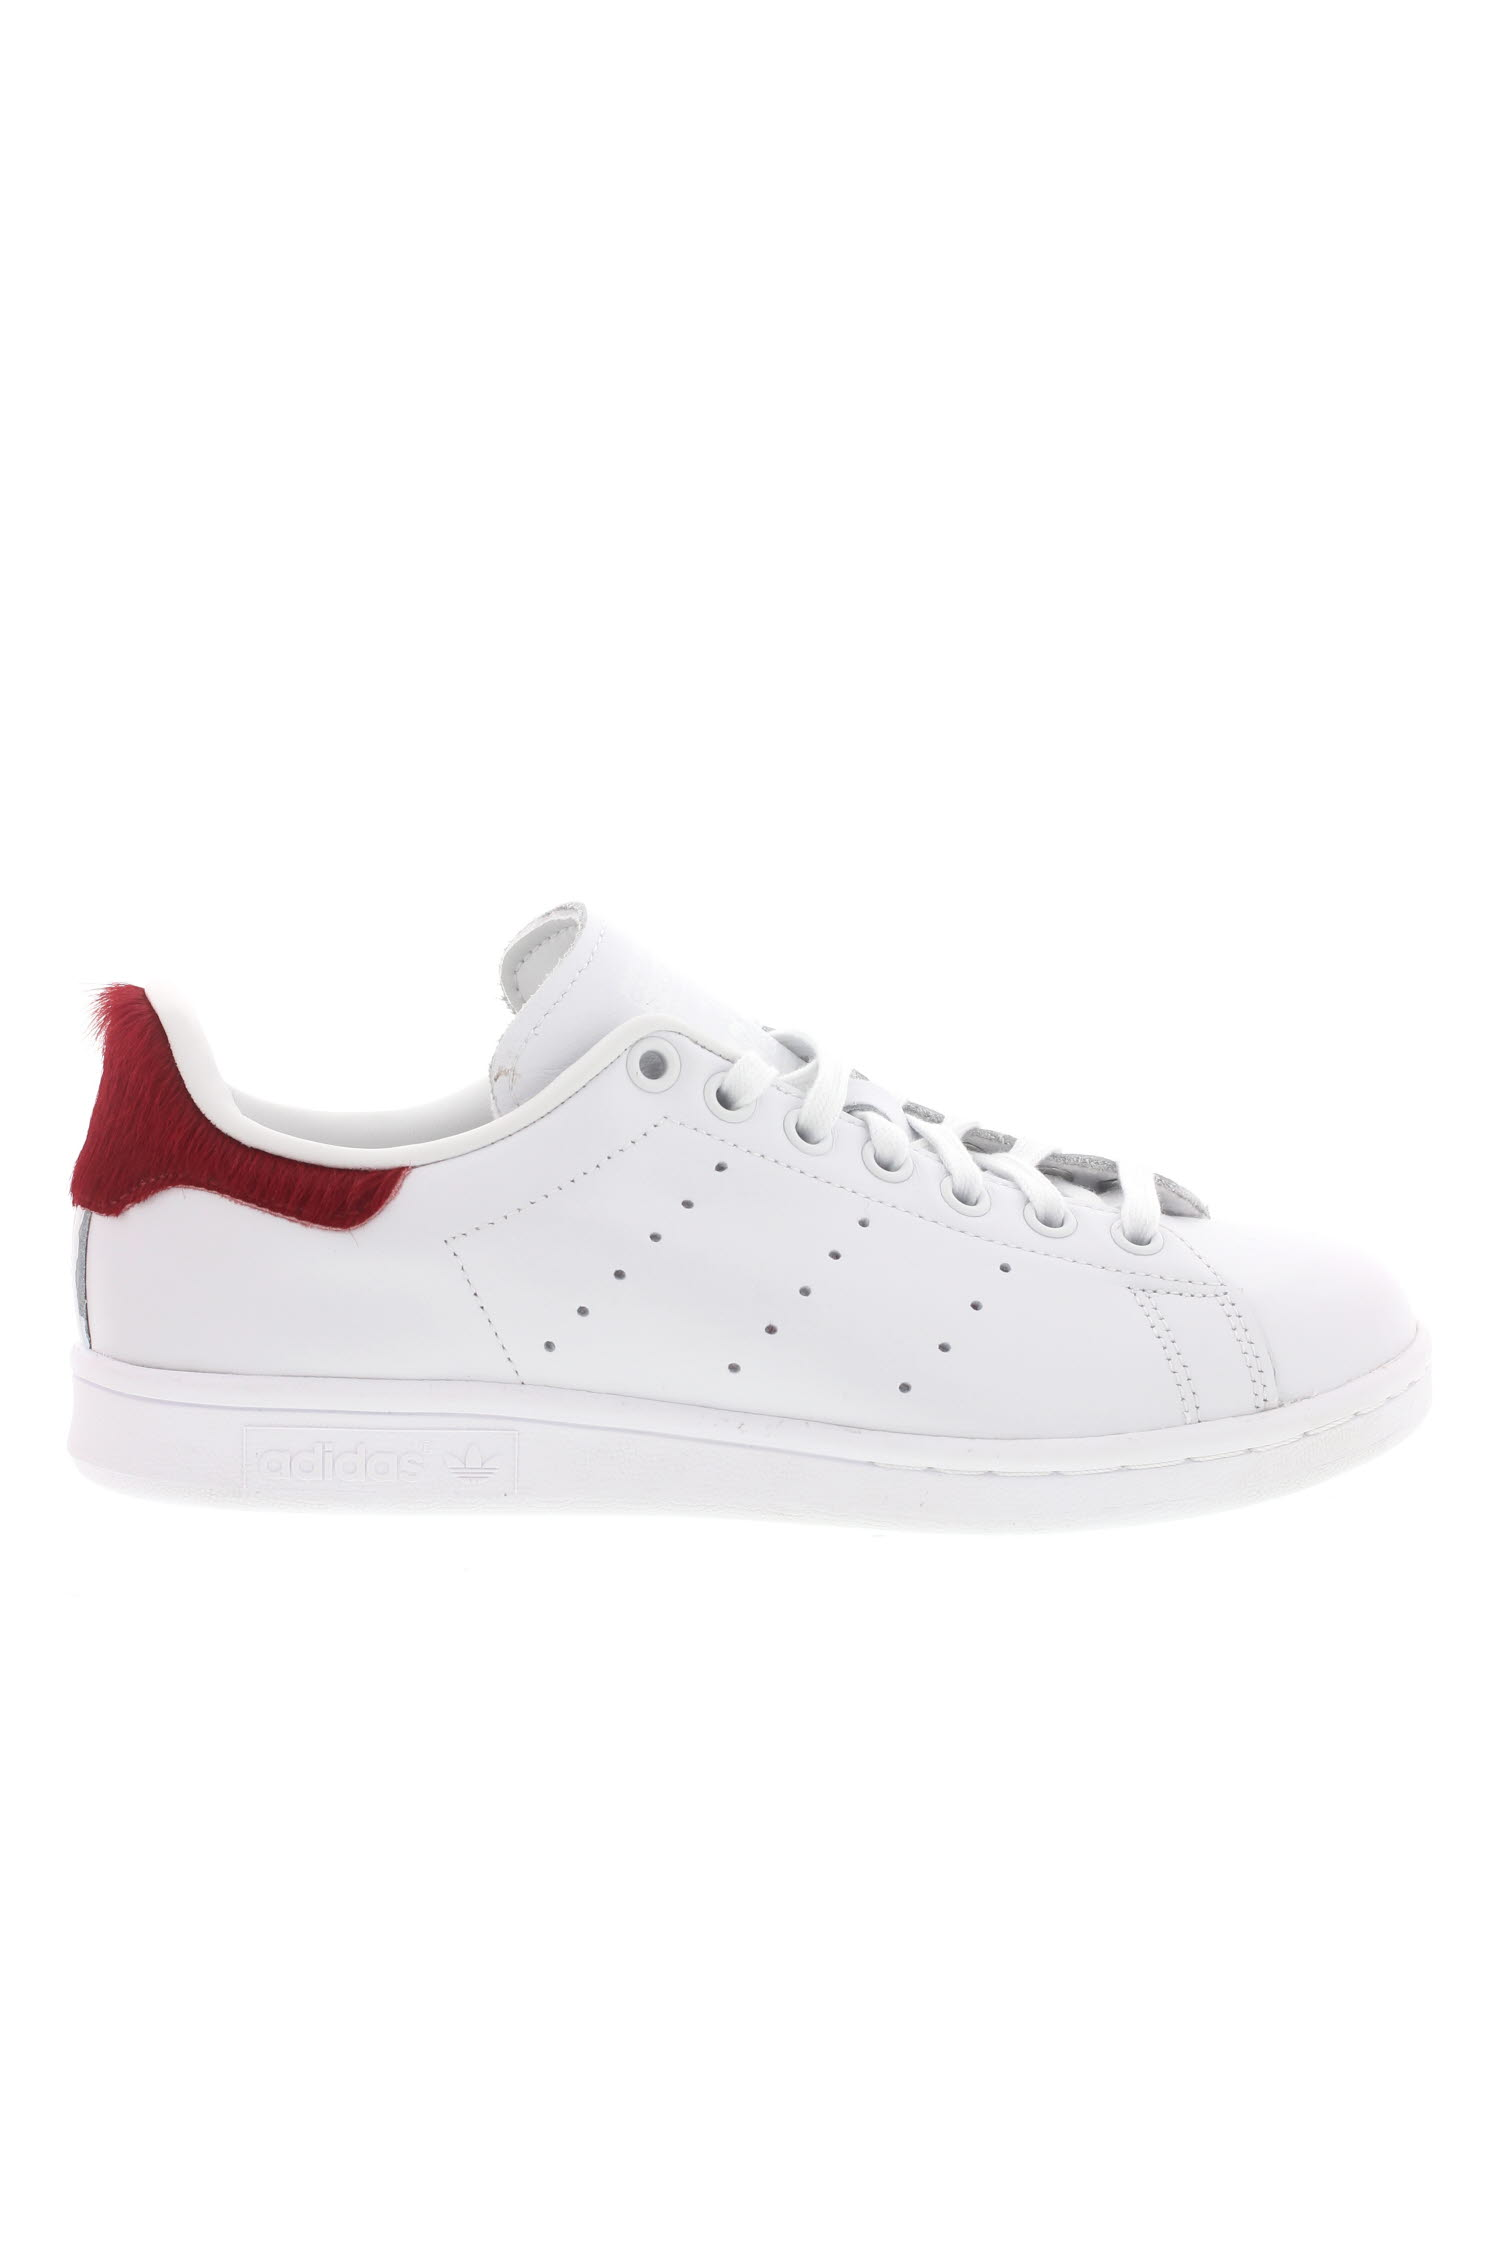 Stan Smith Vintage Rouge